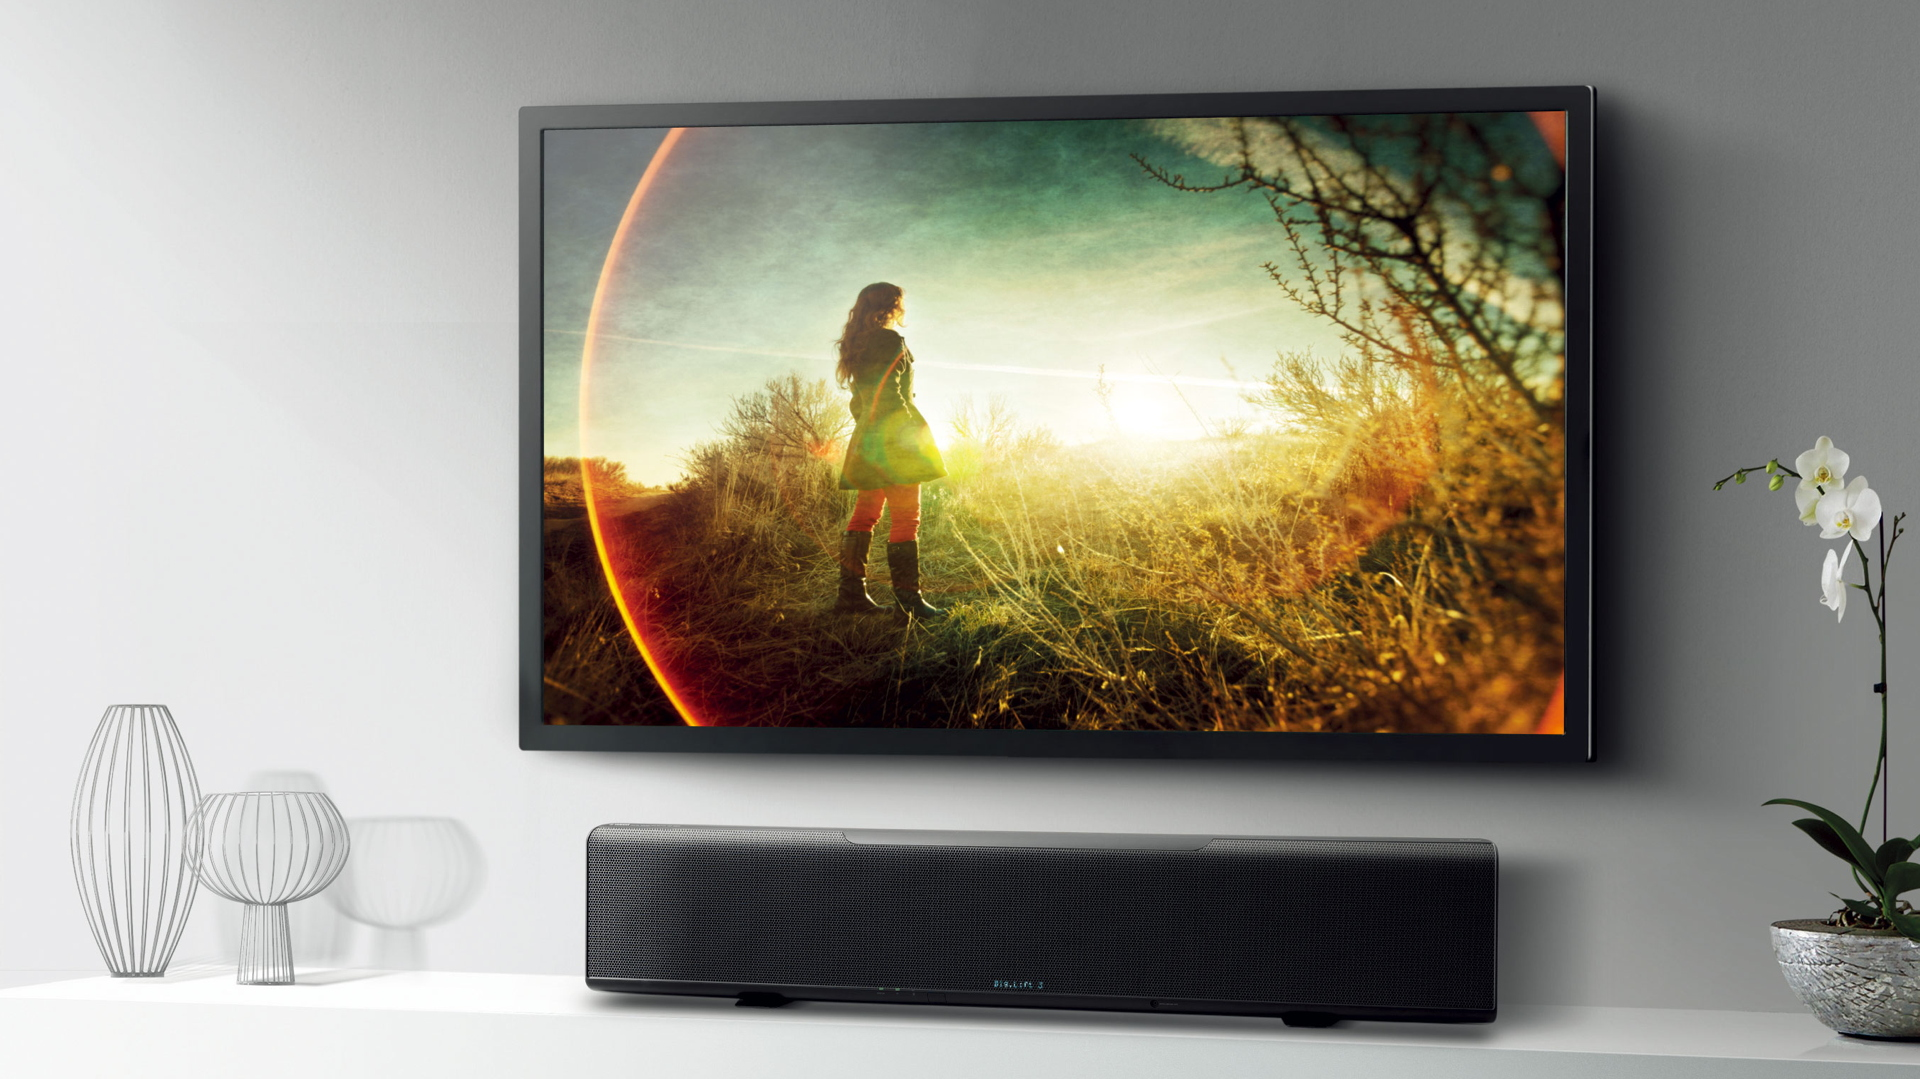 Yamaha unveils the first Dolby Atmos and DTS:X soundbar